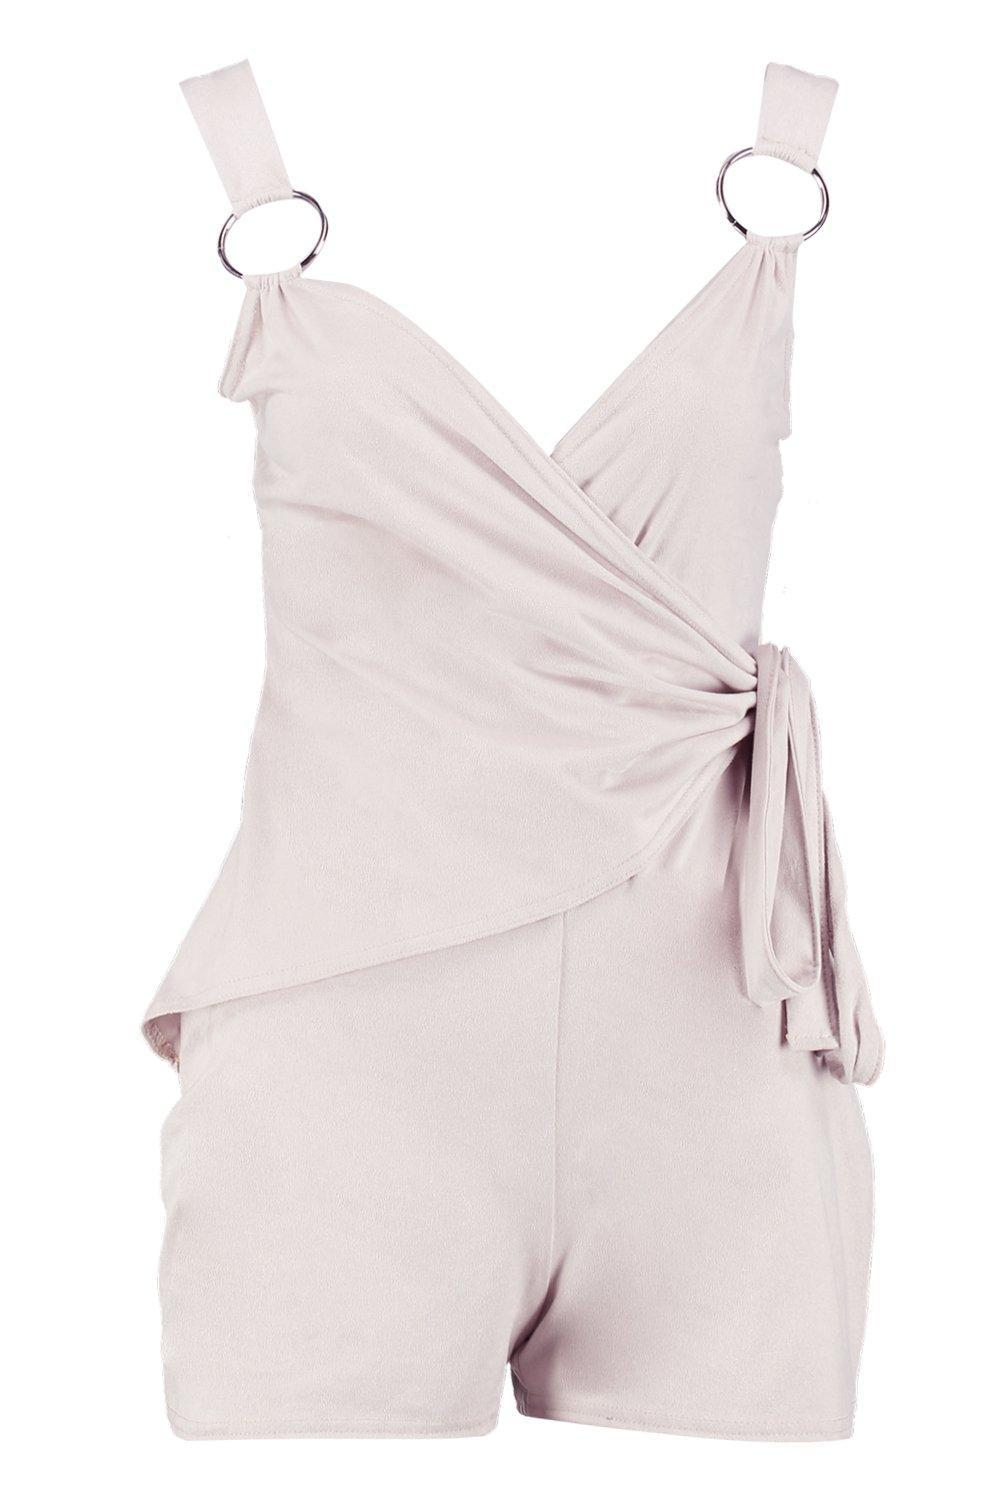 28376b862bf Lyst - Boohoo Hailey Suedette Ring Detail Wrap Over Playsuit